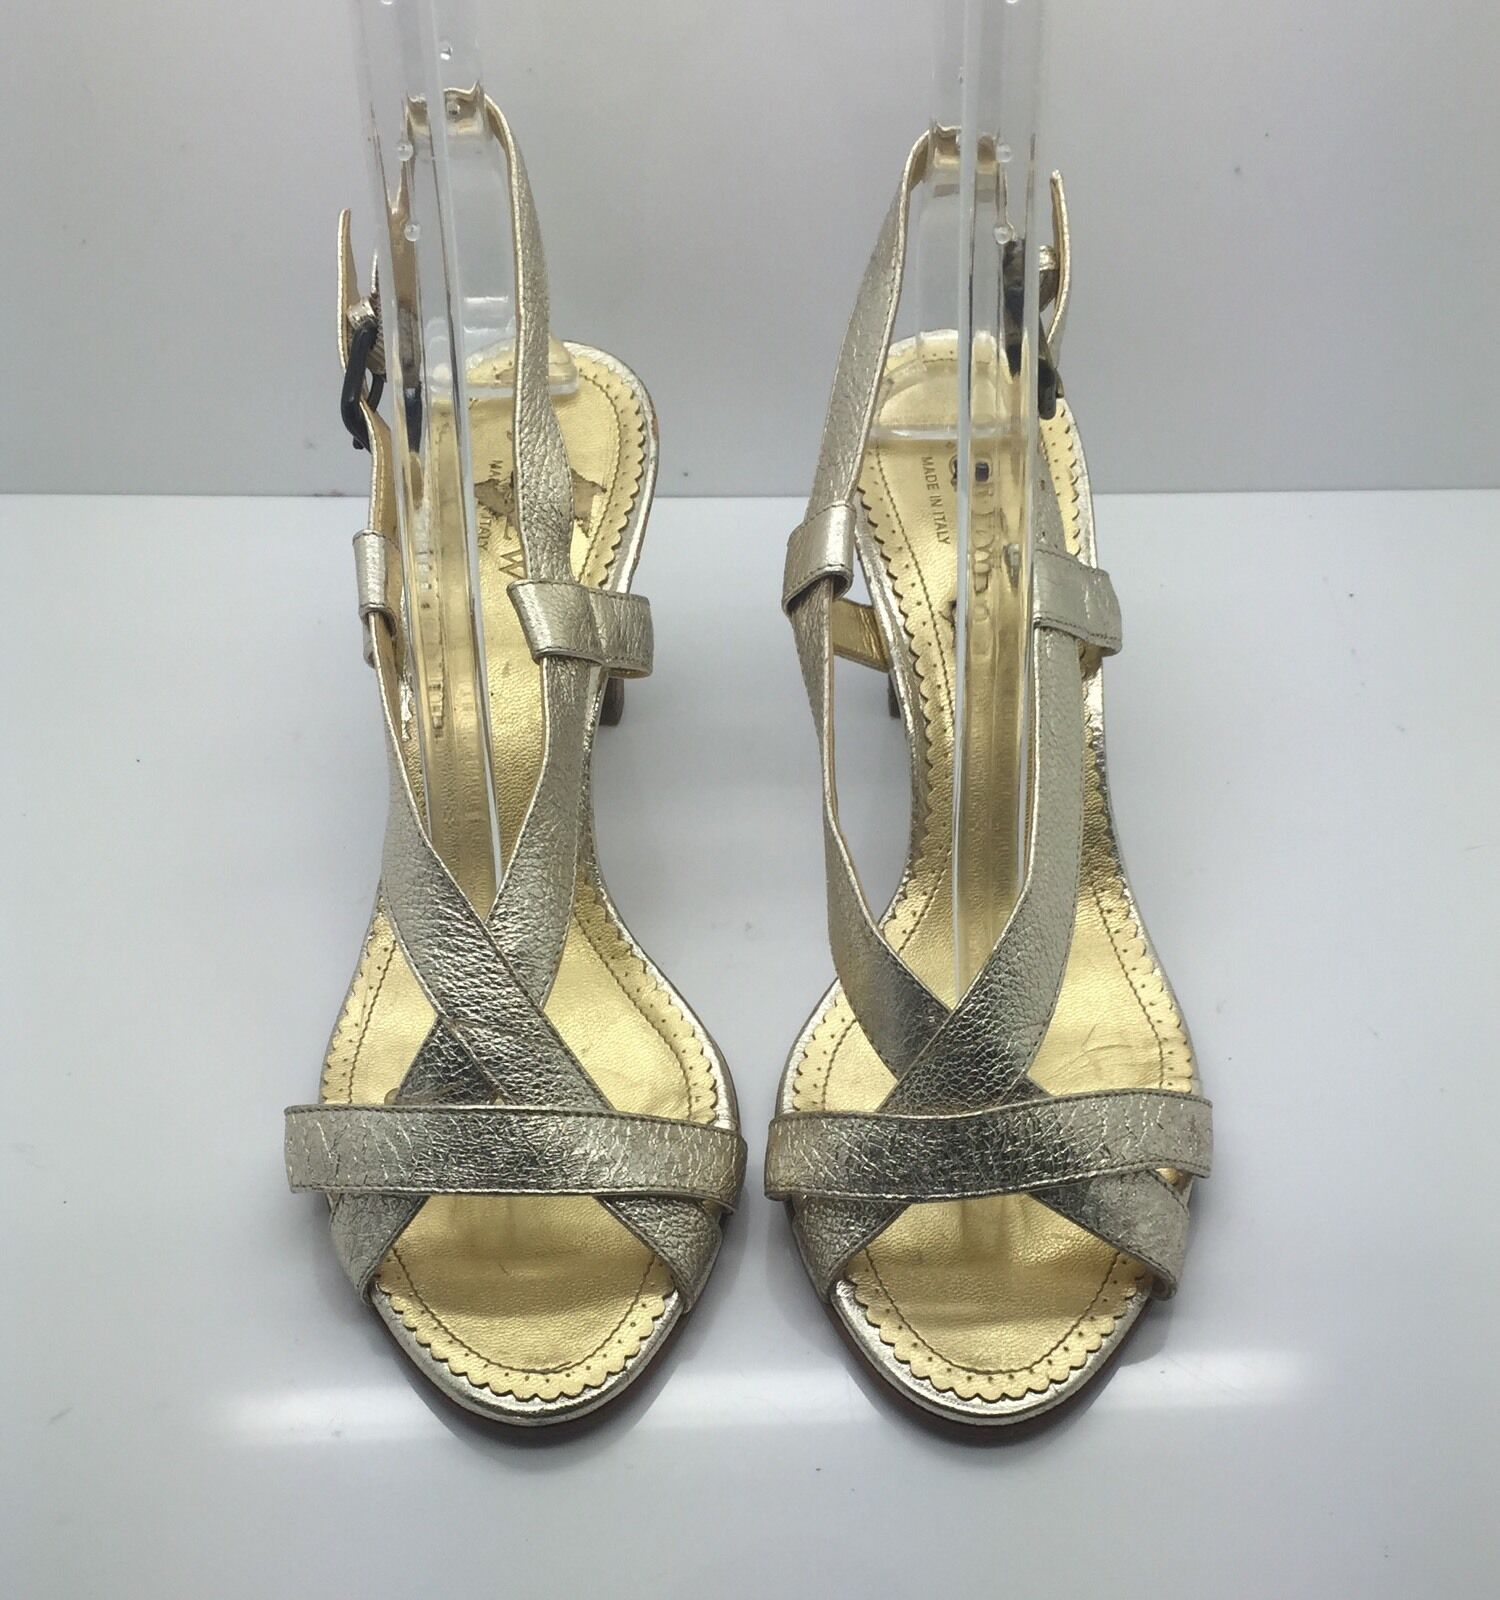 J CREW Gold Metallic Leather Strappy Heels Sandals Woman's Sz 8.5M Italy CUTE!!!